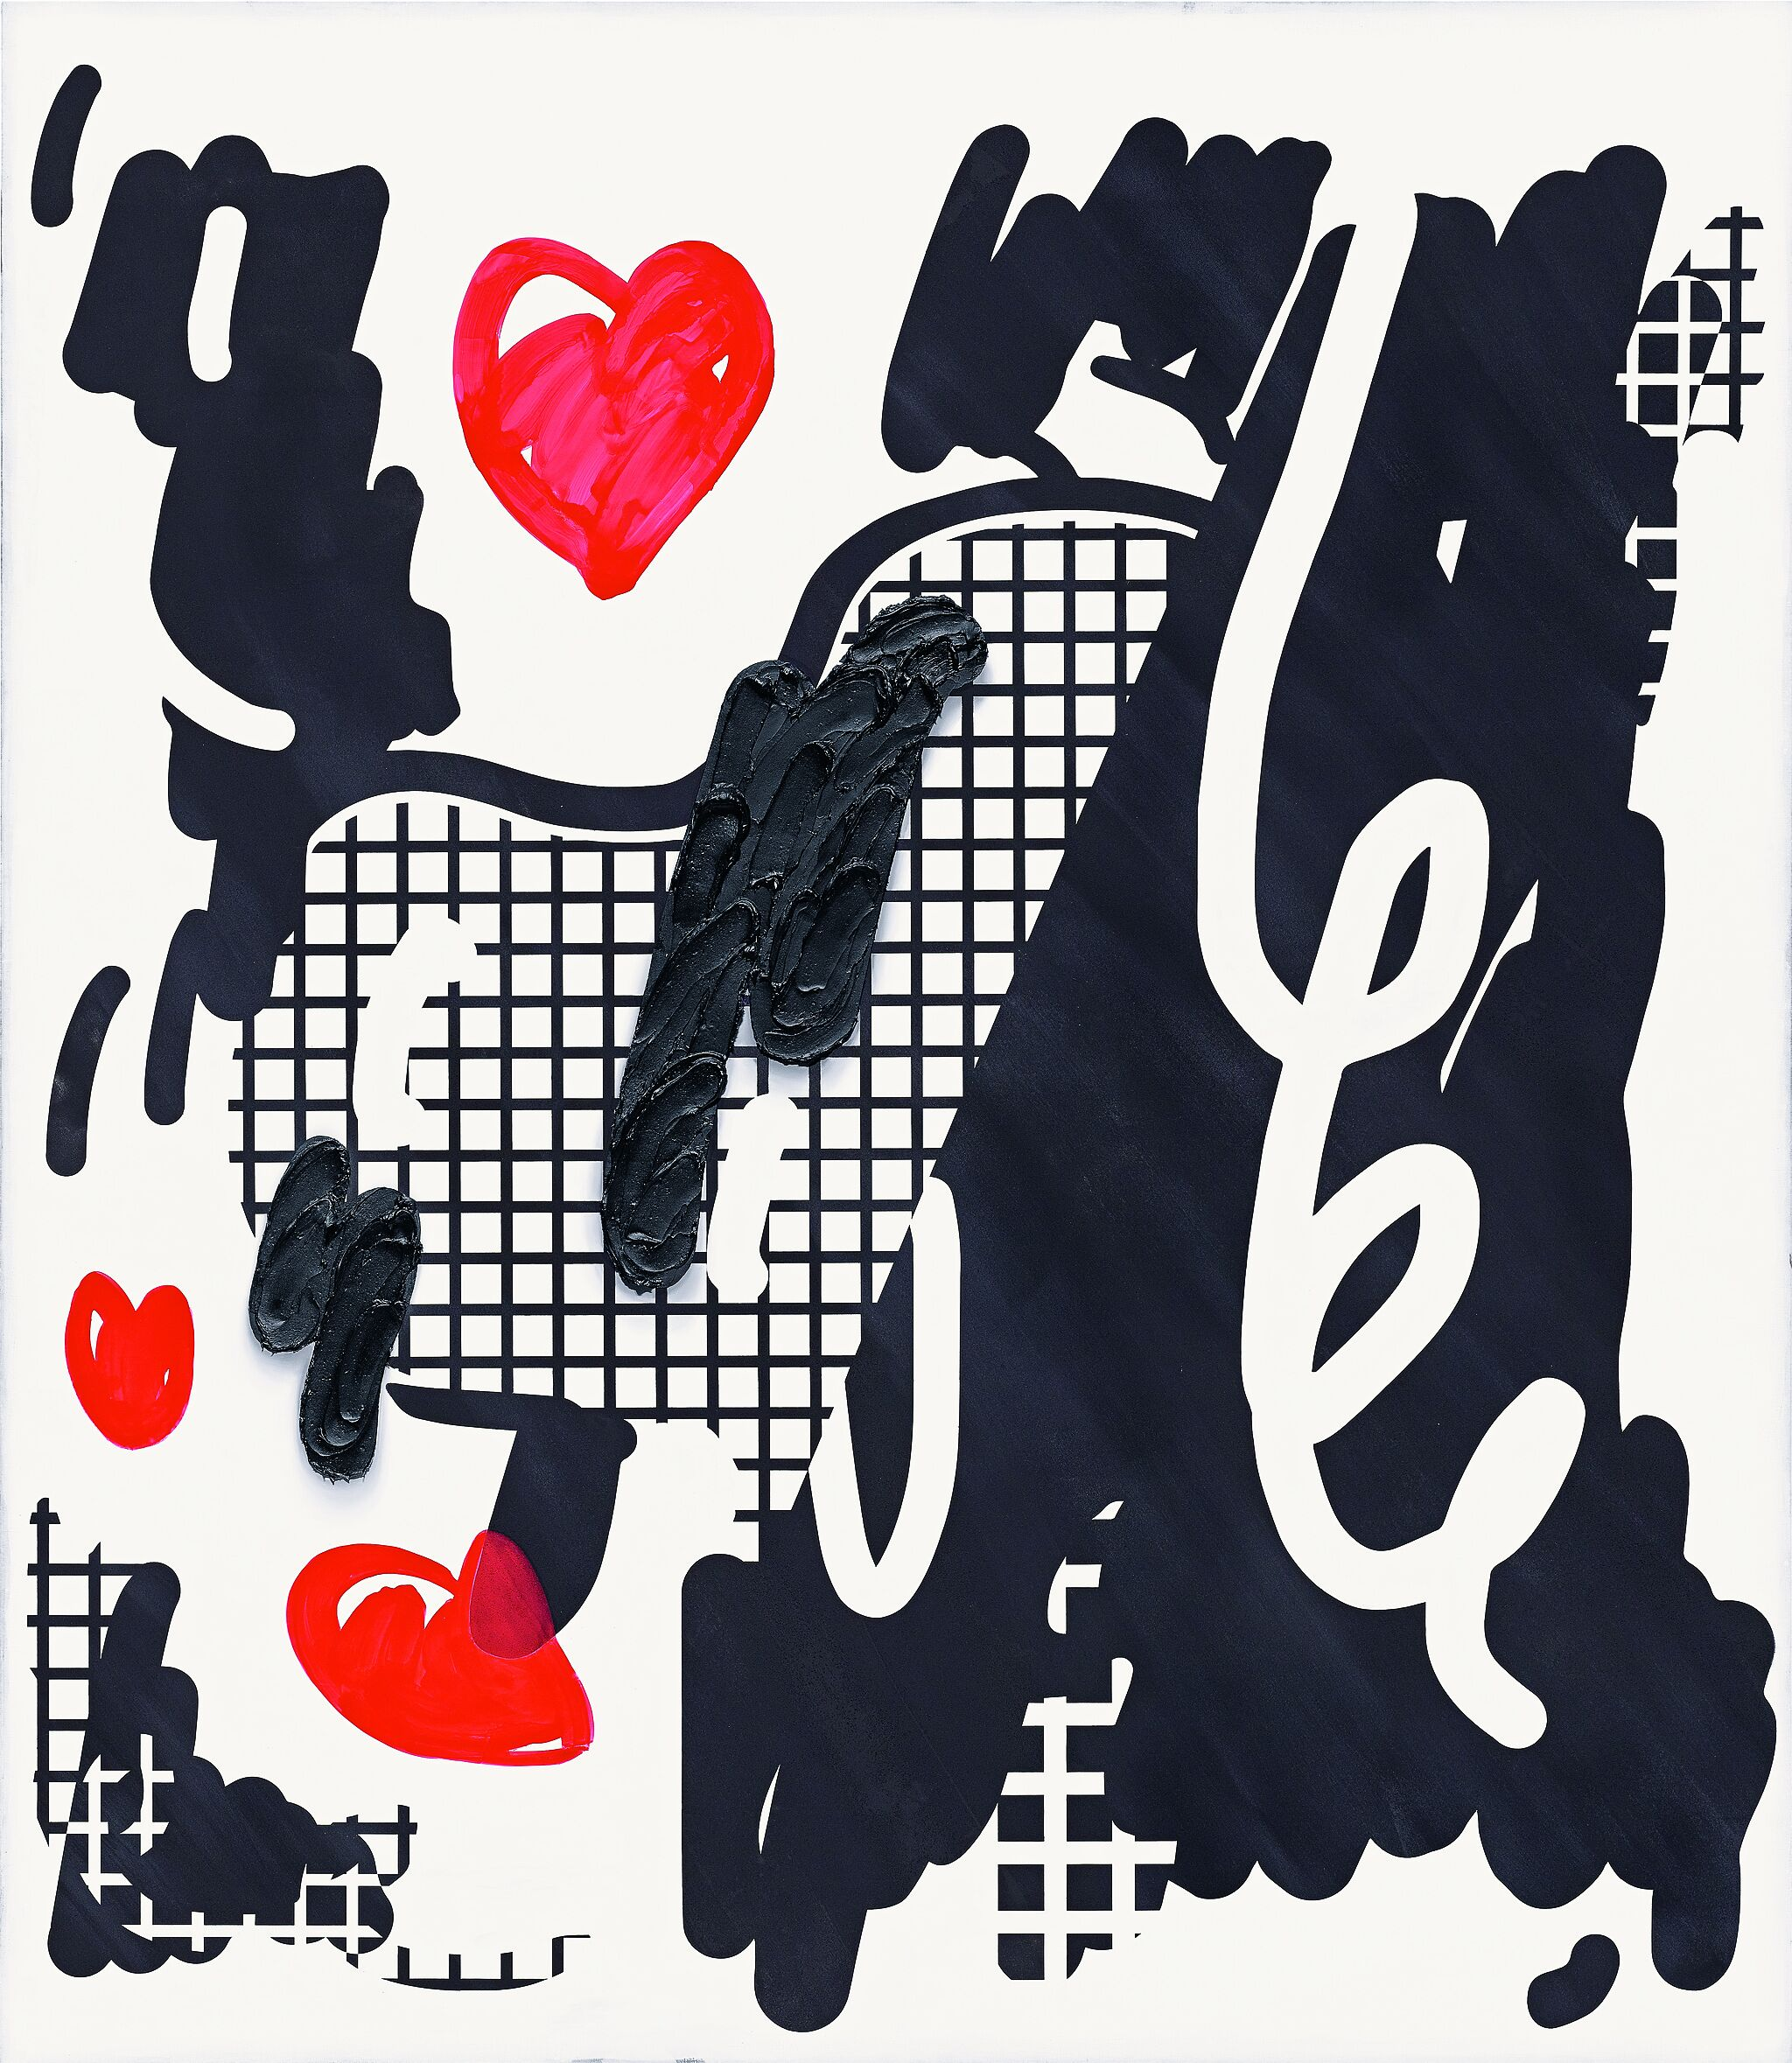 Painting of red hearts with black and white squiggles.